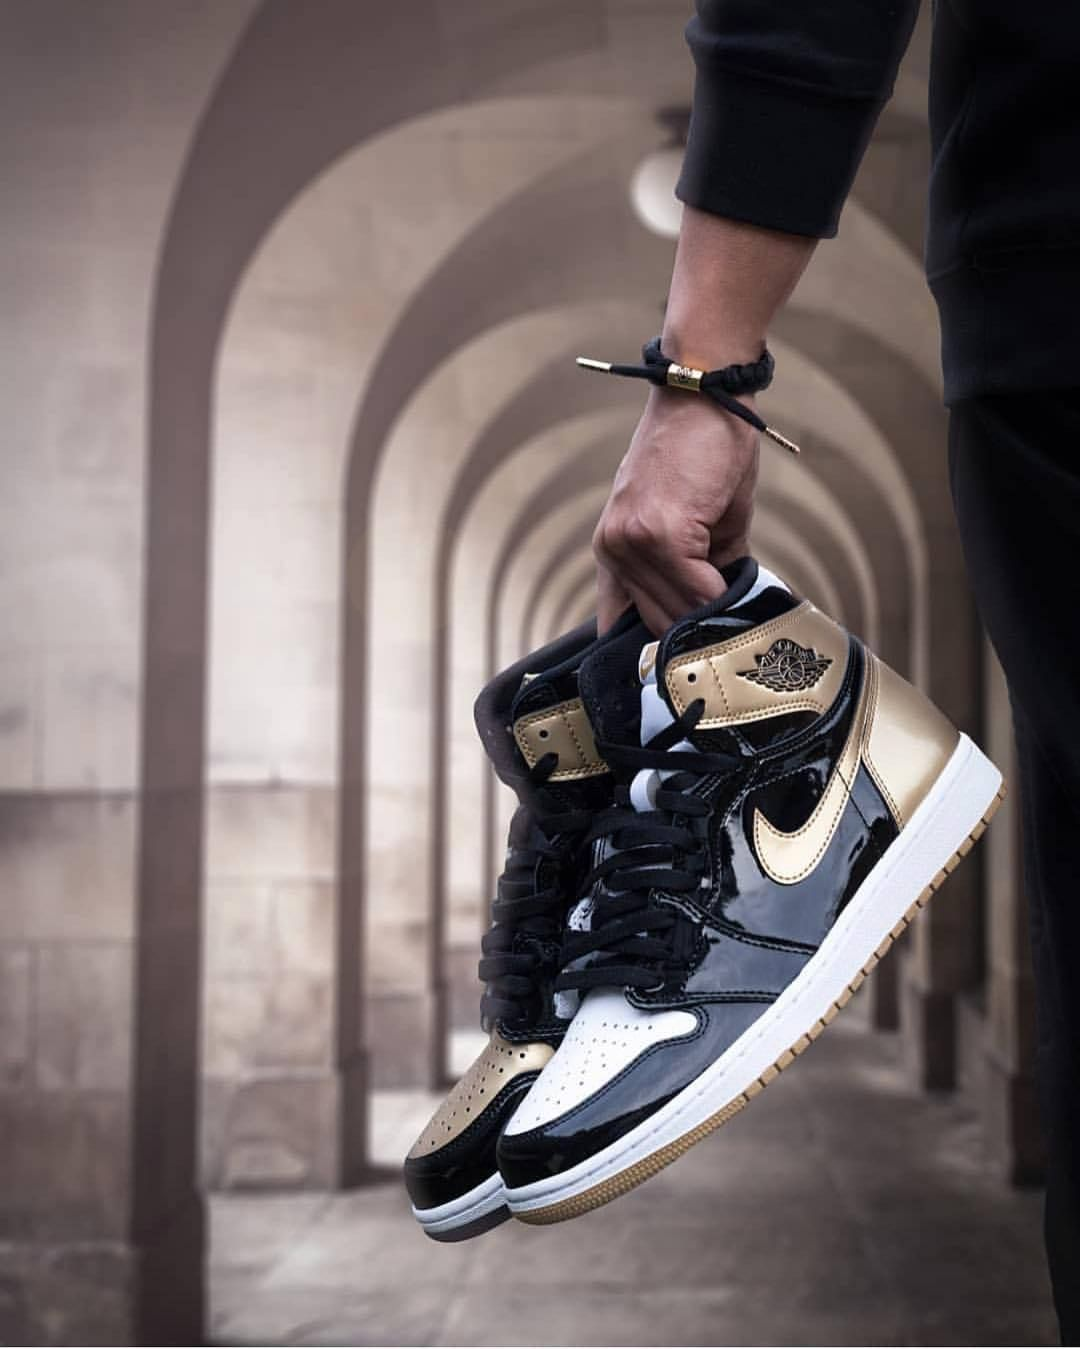 a4f768690926 Nike Air Jordan 1 Retro High OG  Gold Top 3  - 2017 Sneakers greatly  benefit from shoe trees related to care